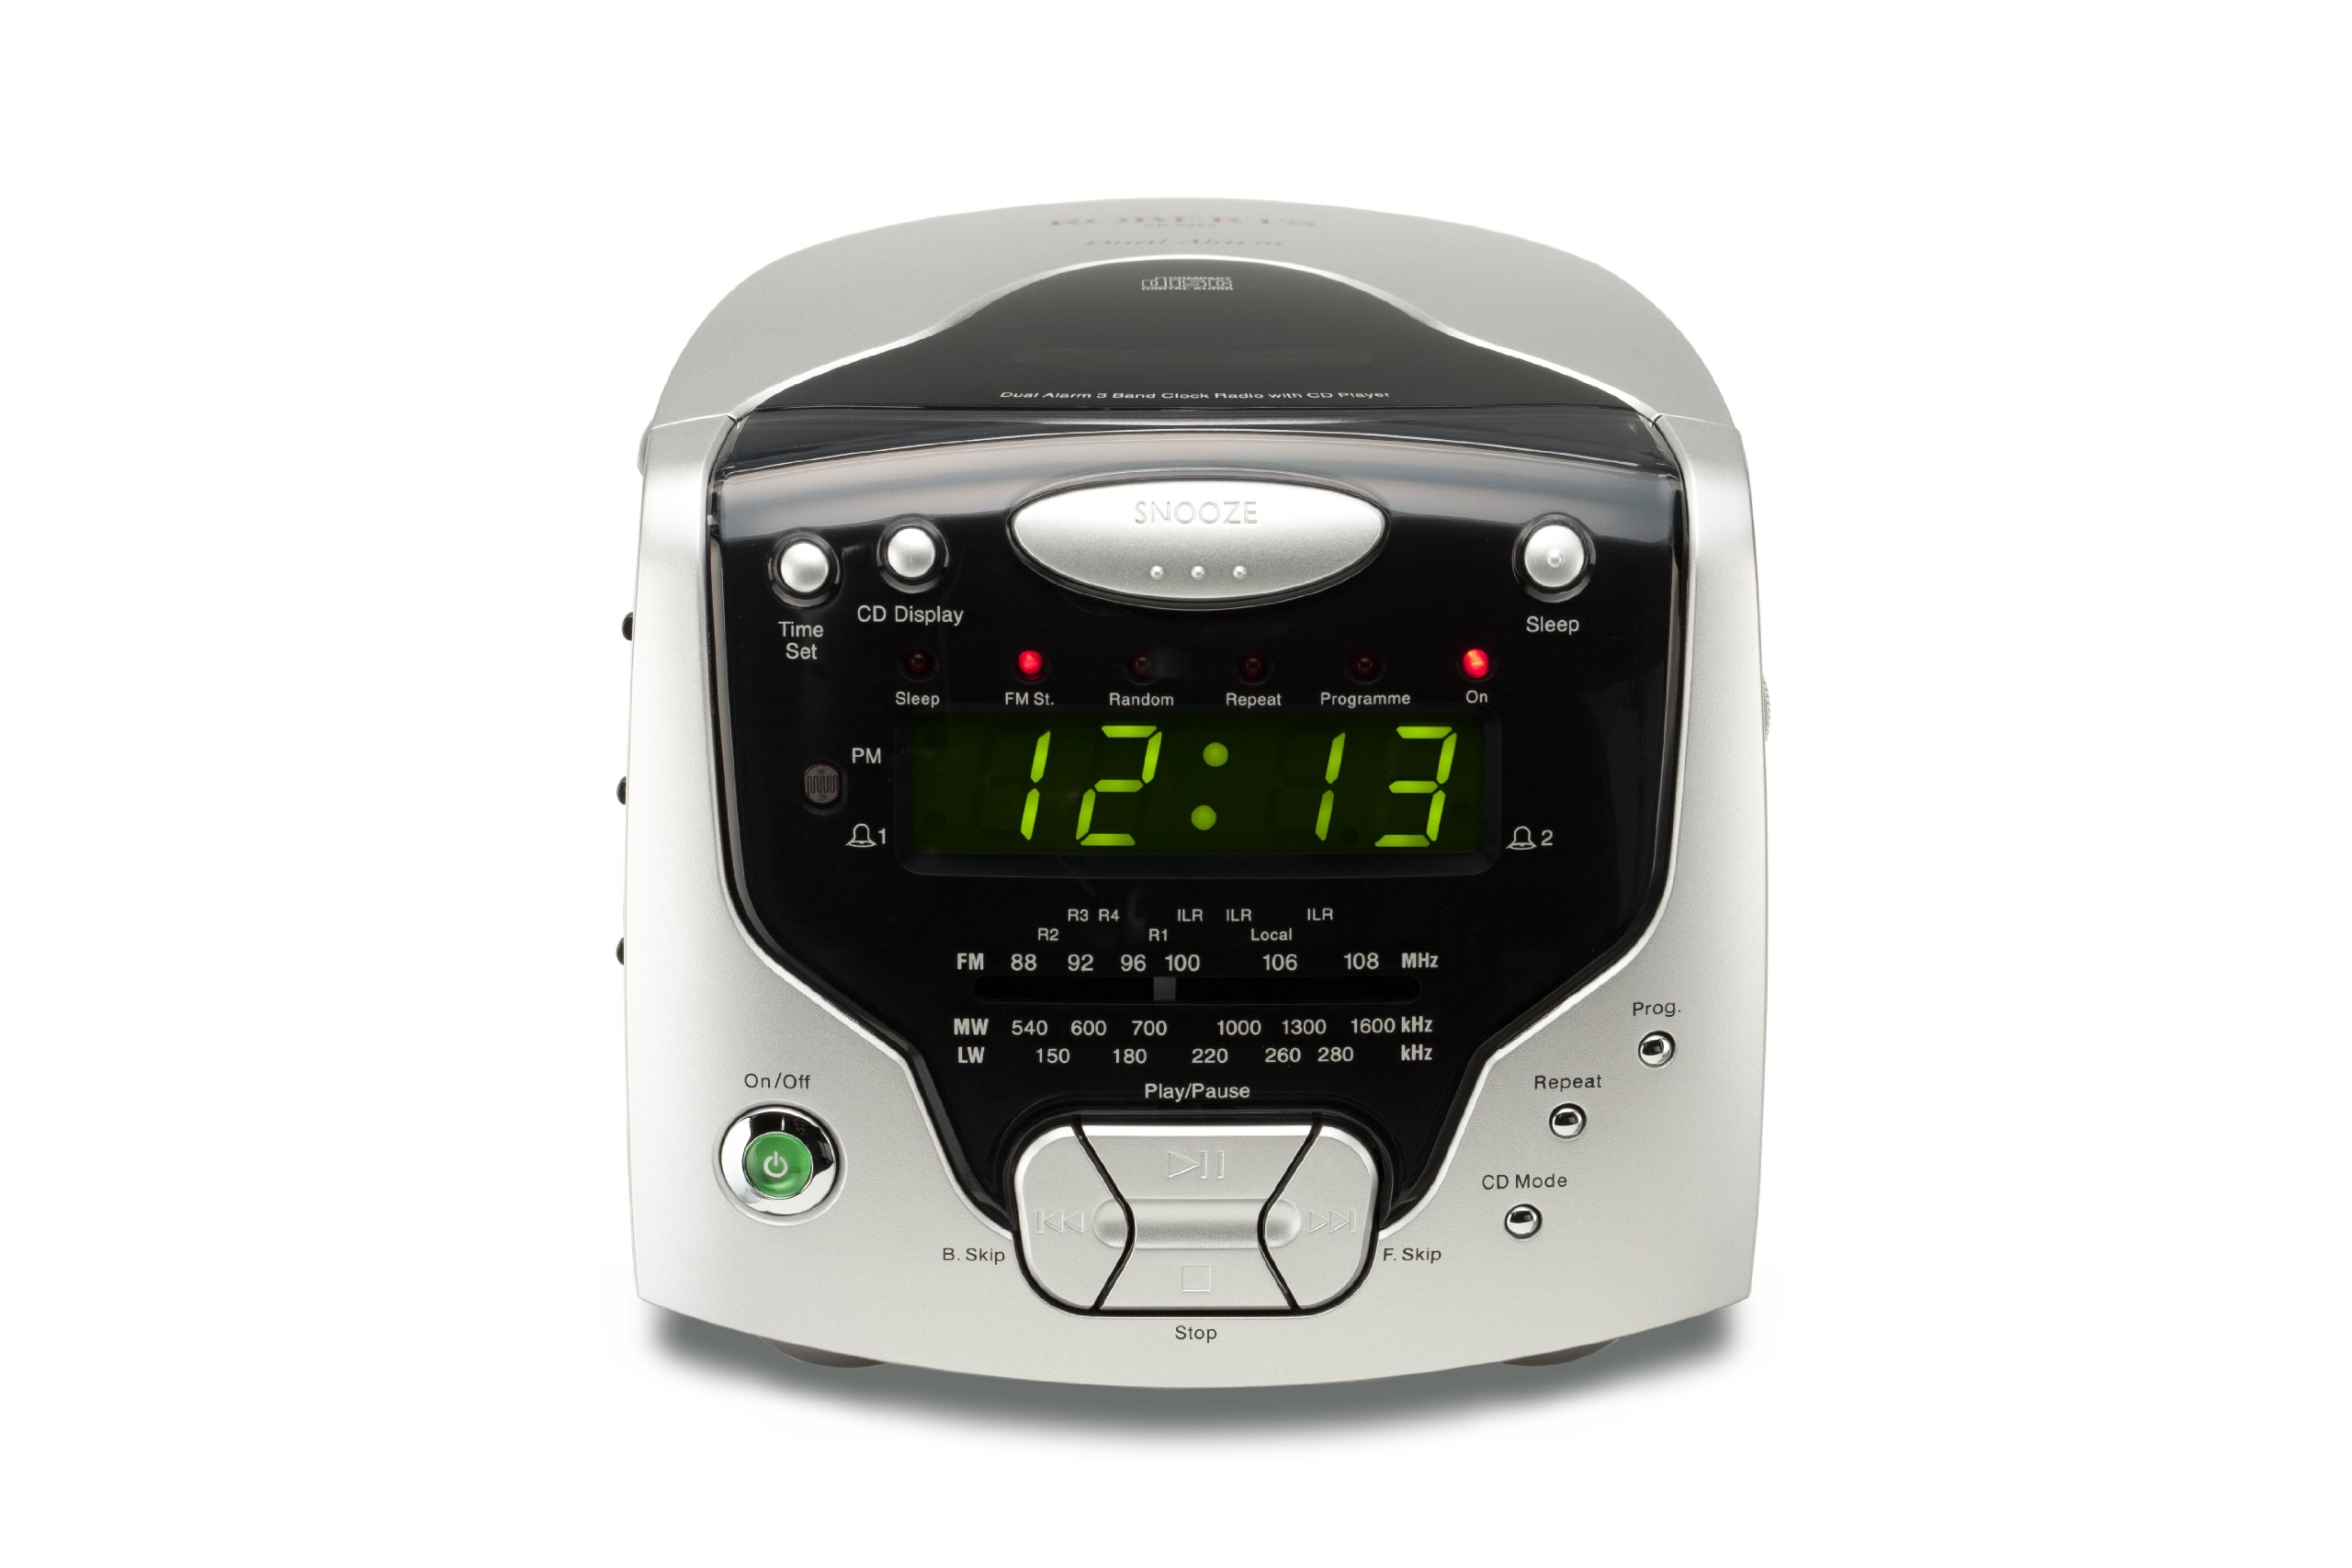 roberts radios 3 band dual alarm stereo clock radio with cd player cd new ebay. Black Bedroom Furniture Sets. Home Design Ideas